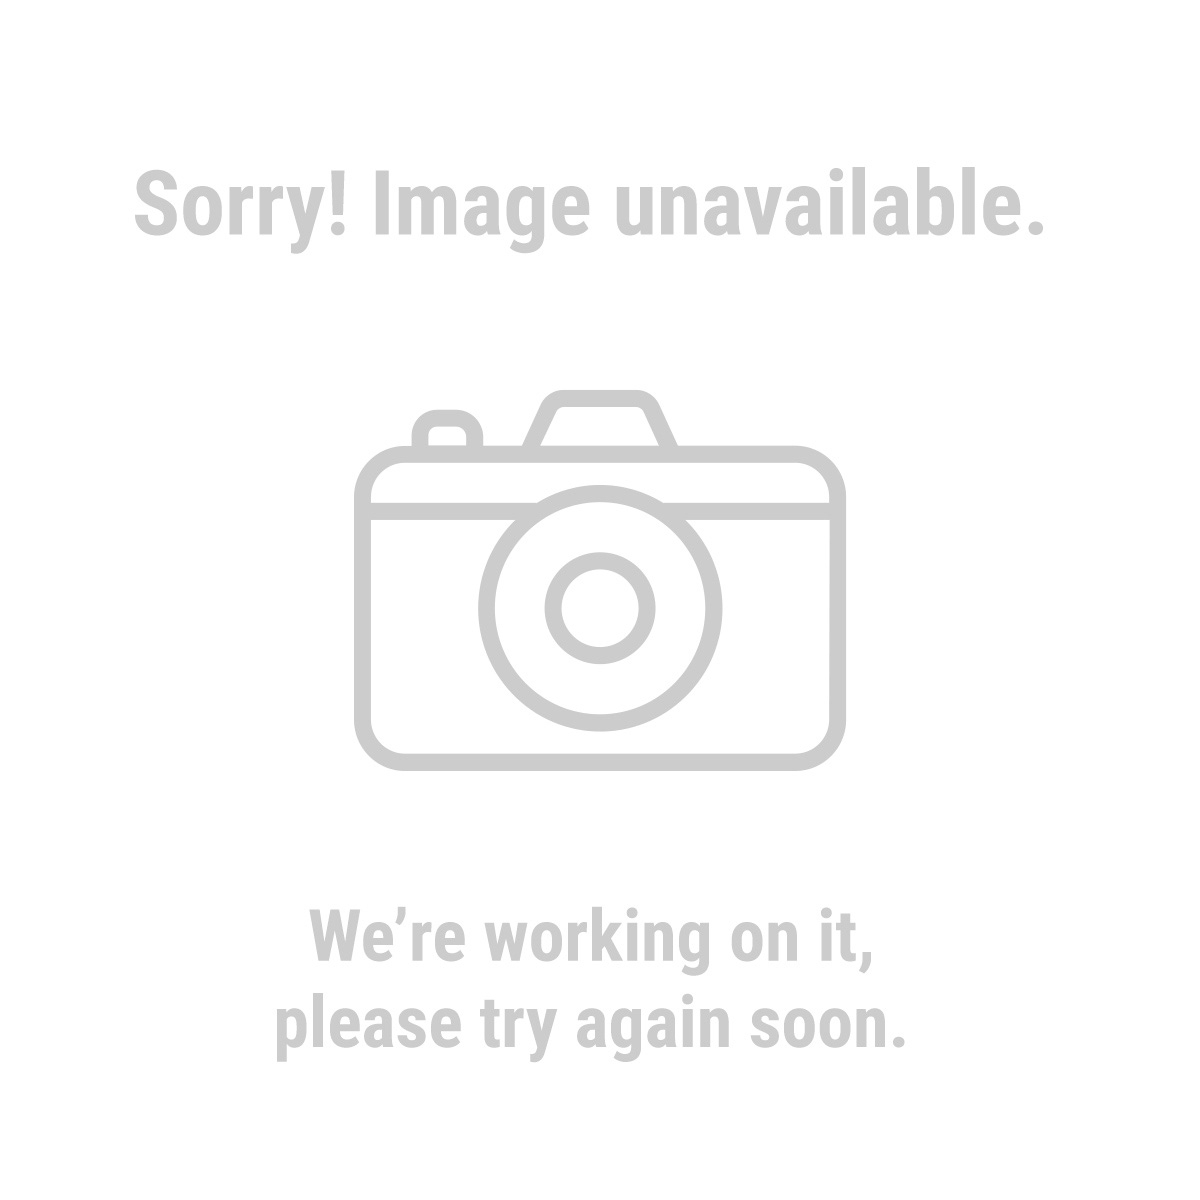 Pittsburgh 95382 Instant Read Digital Thermometer